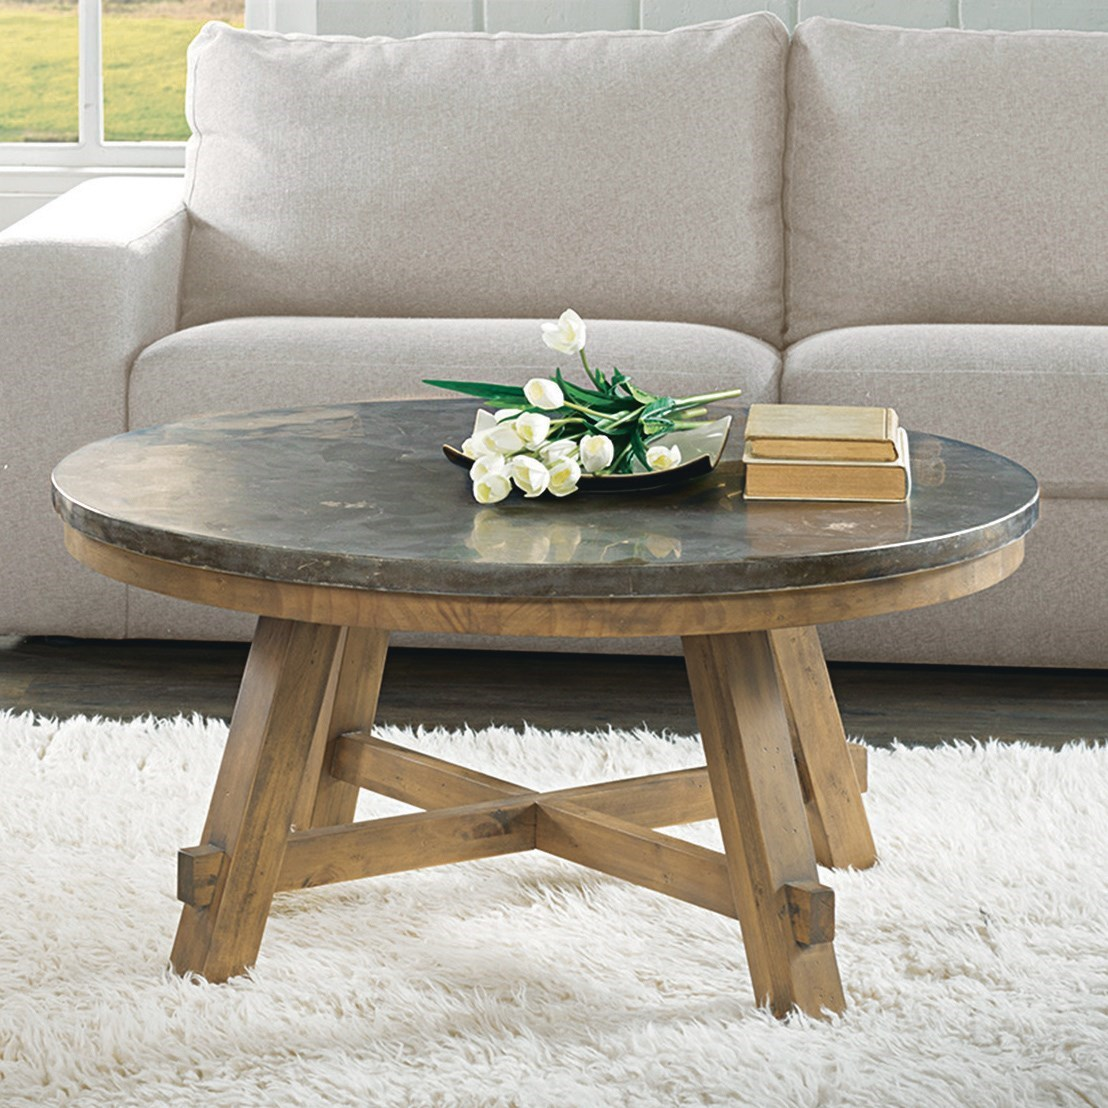 Coffee Table With Bluestone Top: Round Cocktail Table With Authentic Bluestone Top By